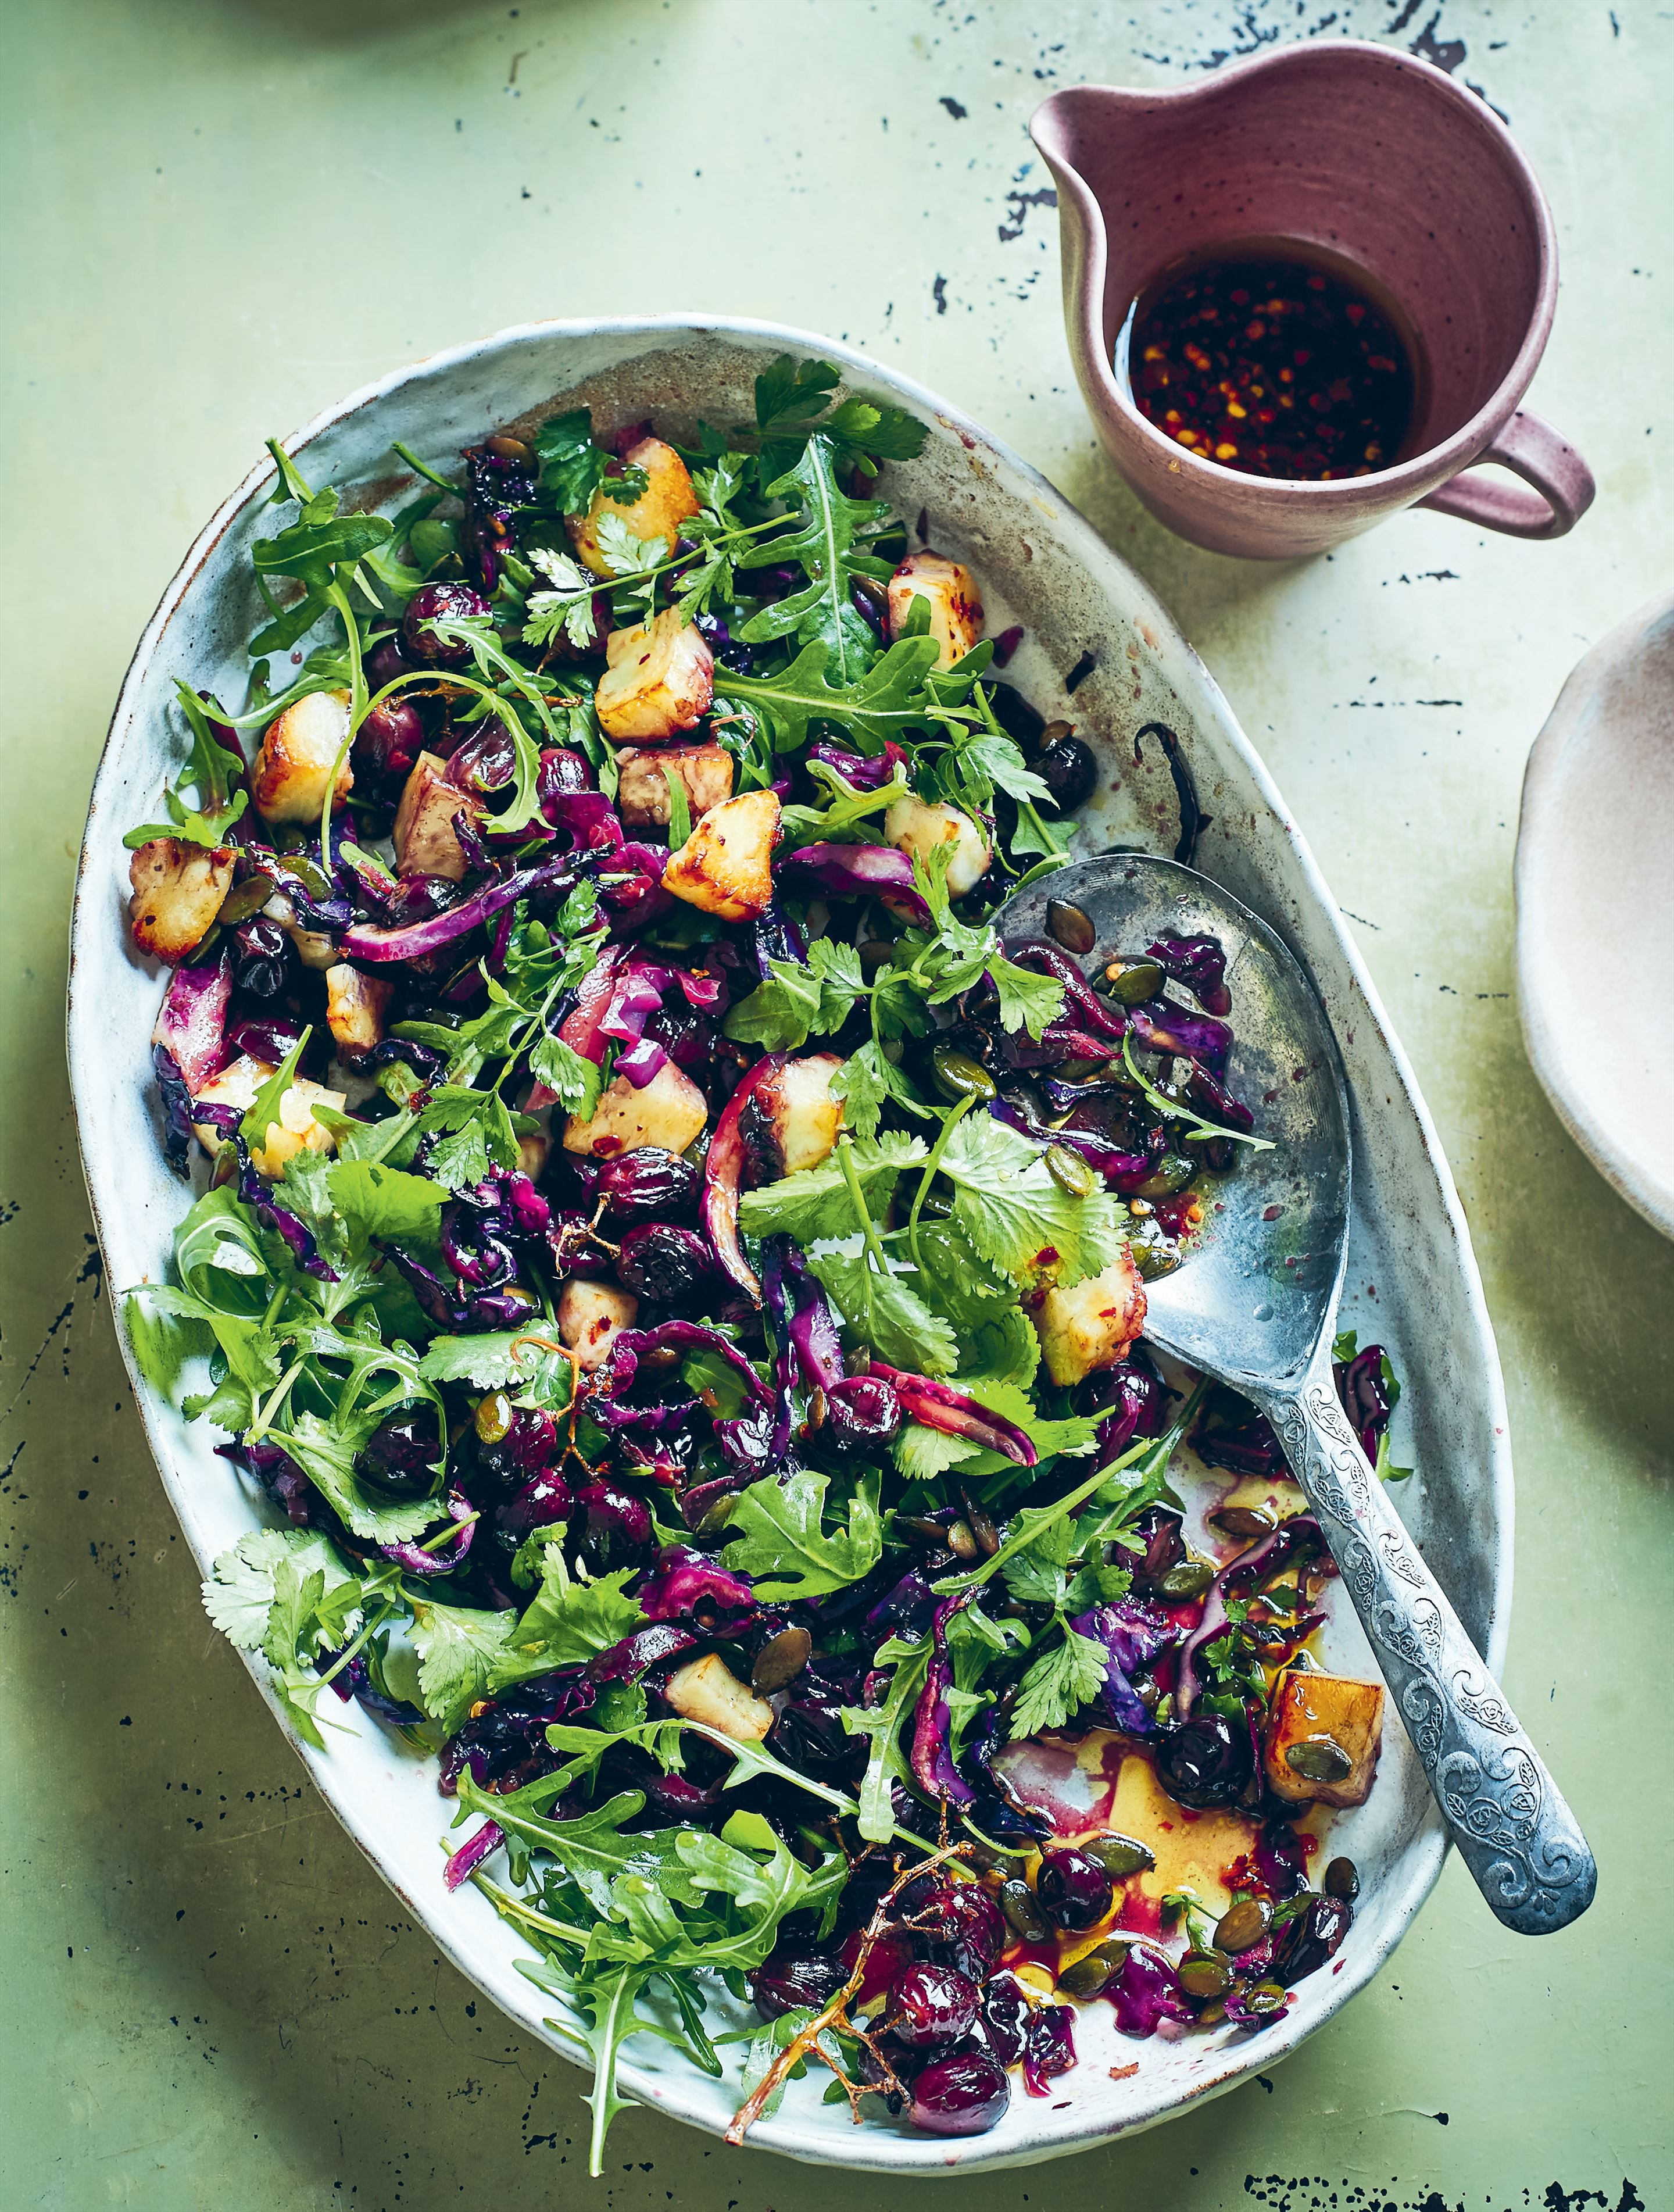 Warm salad of red cabbage, grapes and halloumi